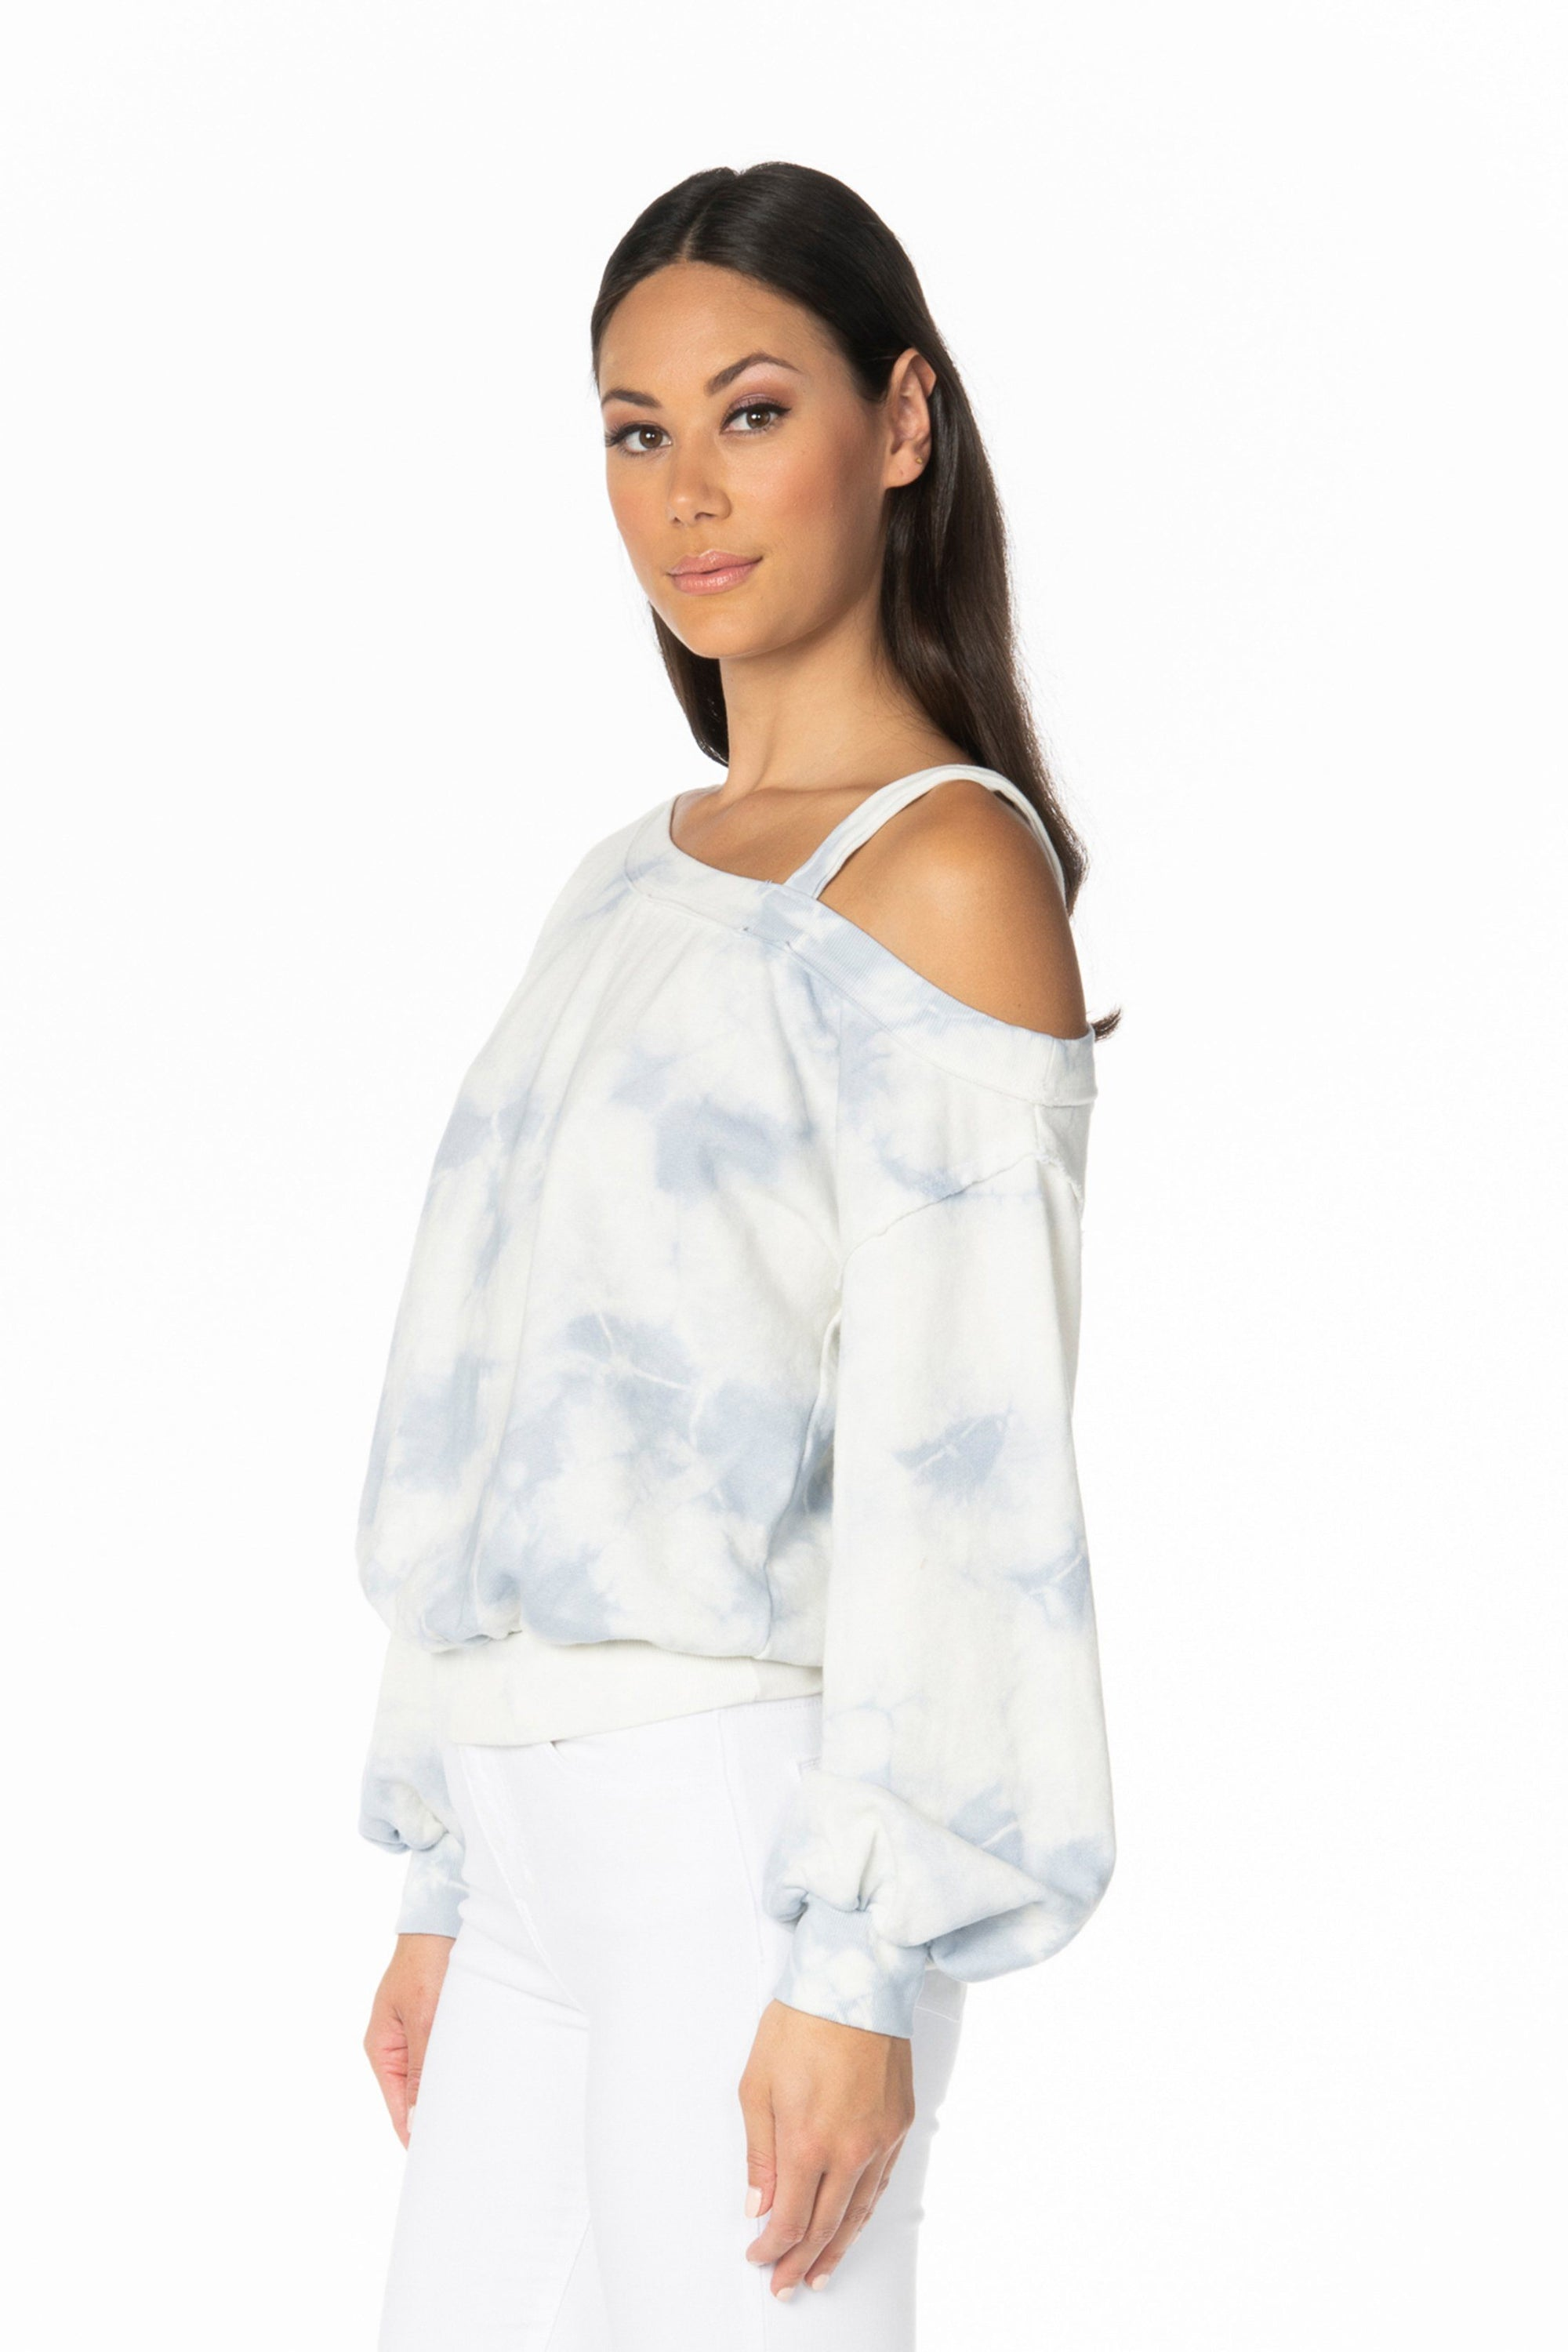 Blue White Long Sleeve Tie-Dye One Shoulder Sweatshirt Tops HYPEACH BOUTIQUE